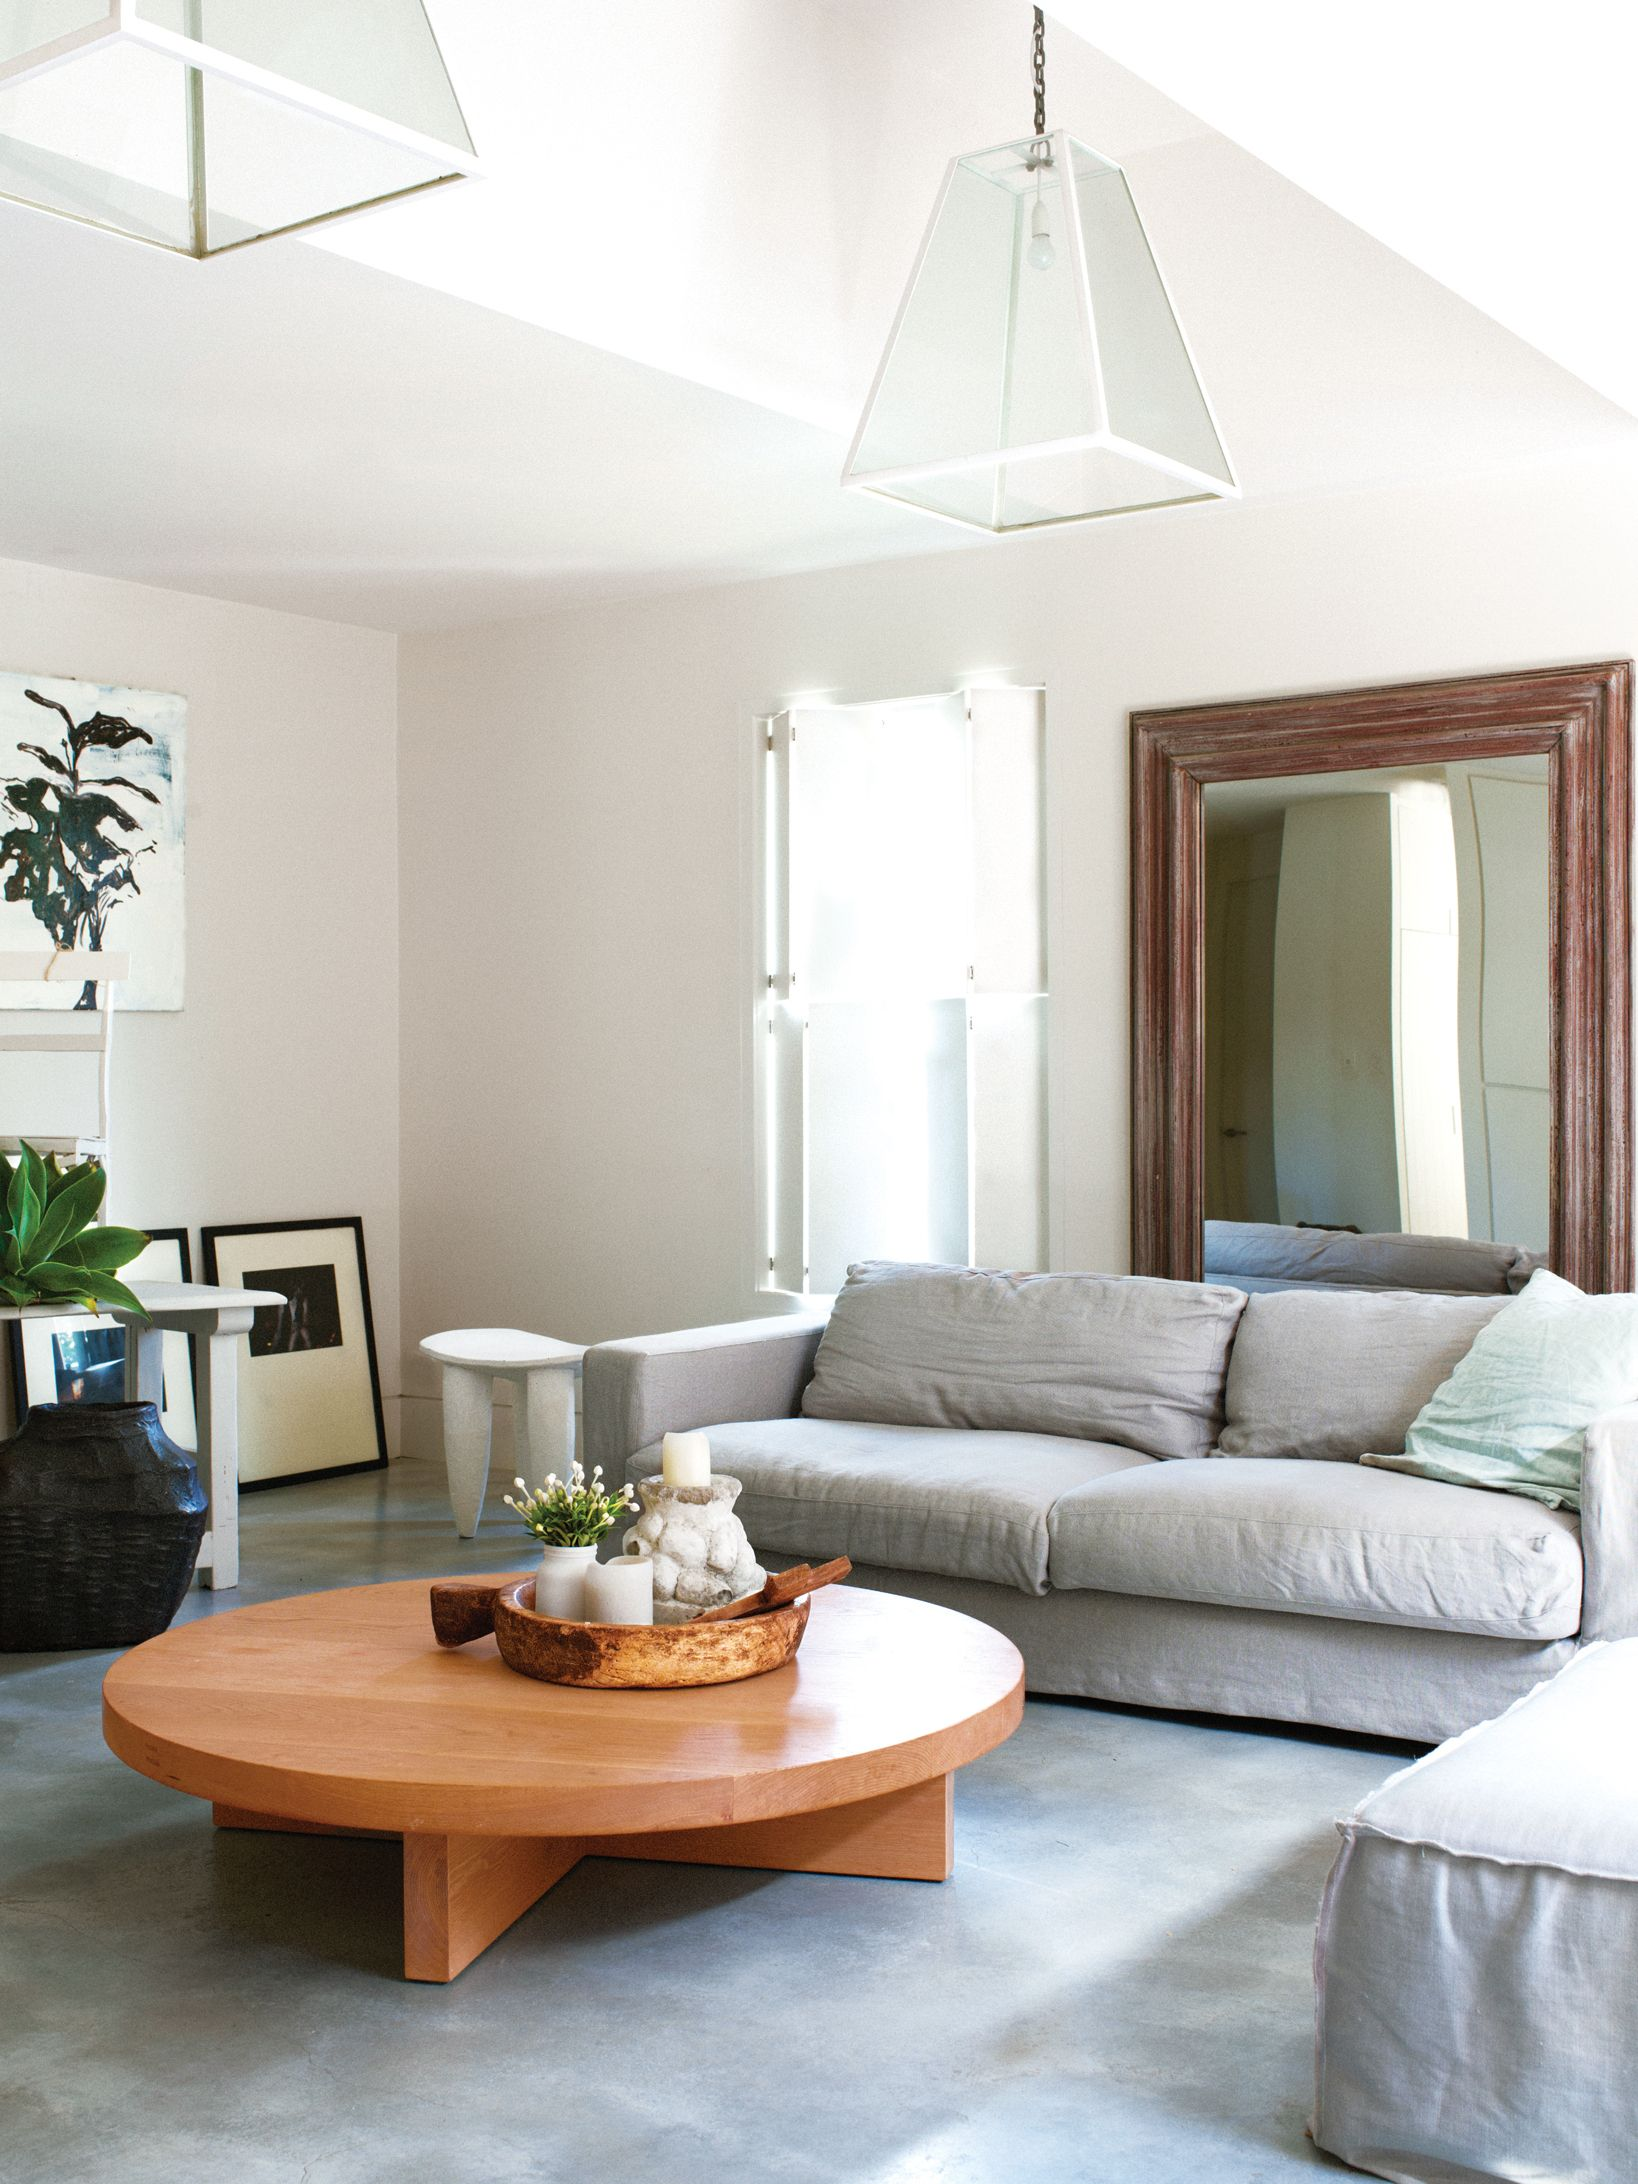 Four tips to make a small room look bigger | Grey couches, Small ...